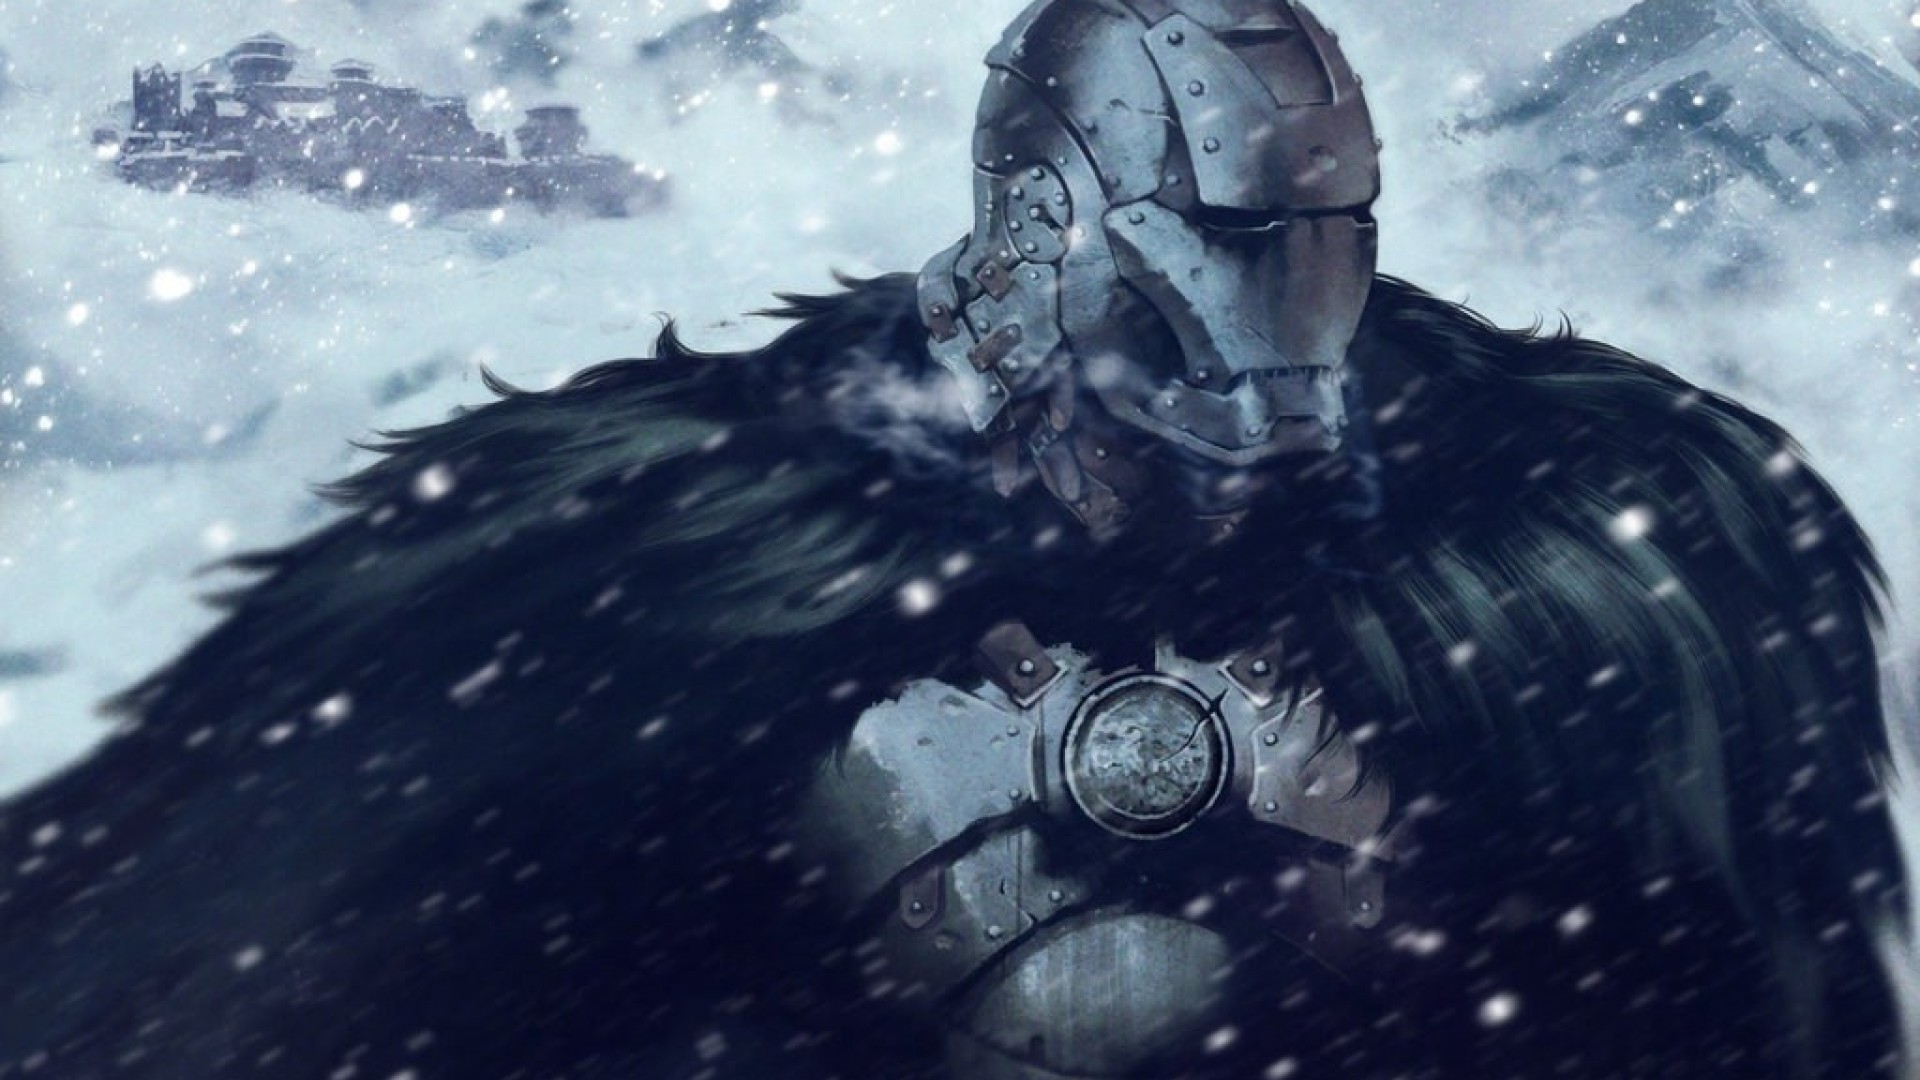 1920x1080 Game Of Thrones, Iron Man, Crossover, Snow, House Stark Wallpapers HD /  Desktop and Mobile Backgrounds